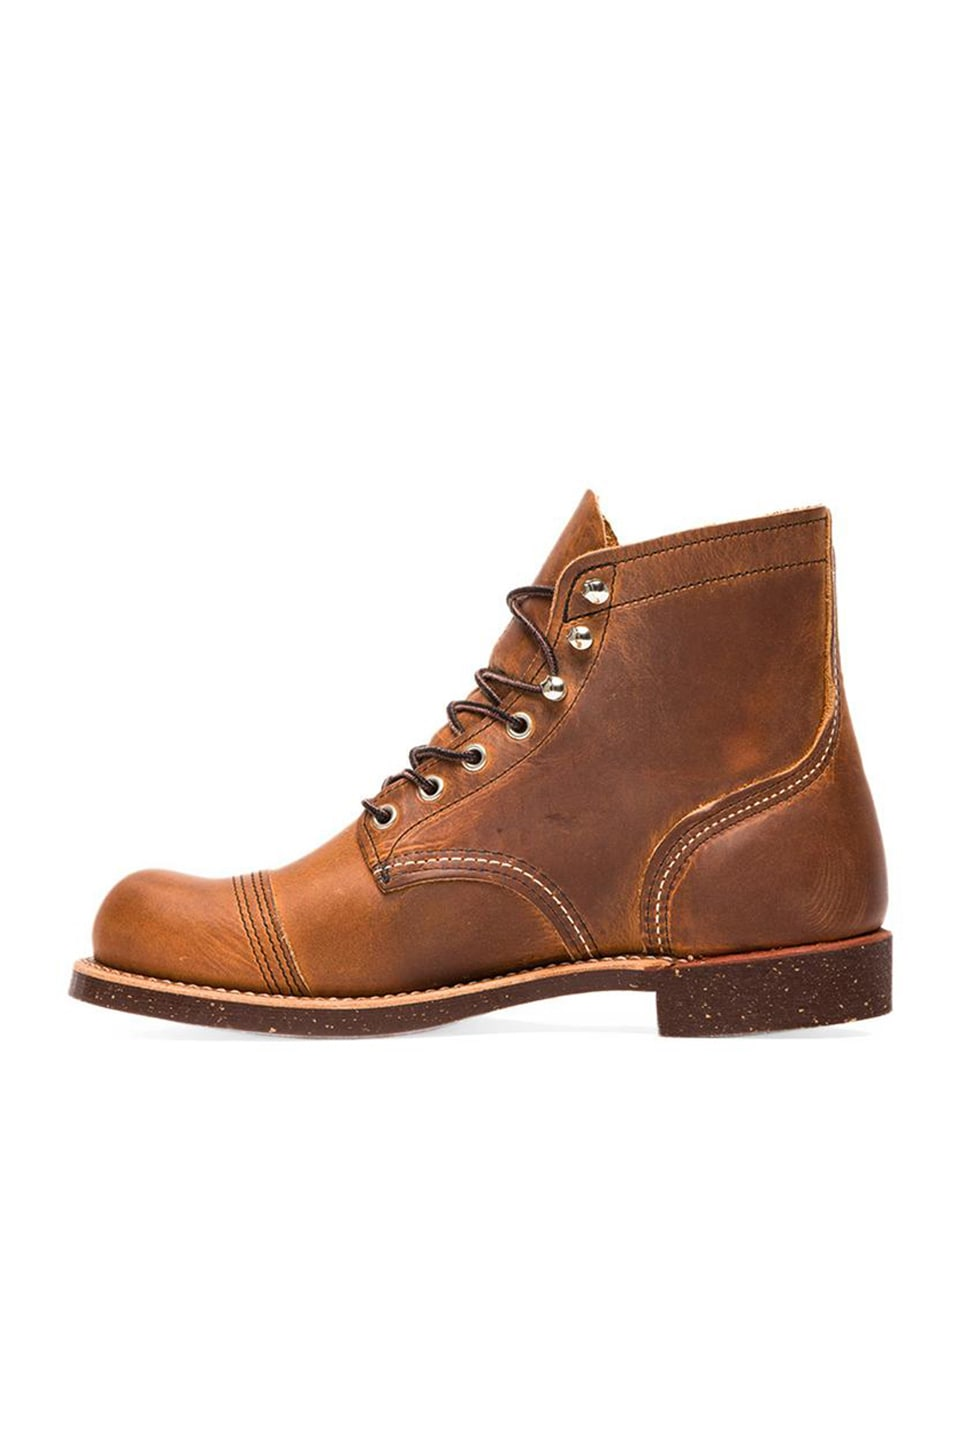 Red Wing Shoes Iron Ranger in Copper Rough & Tough